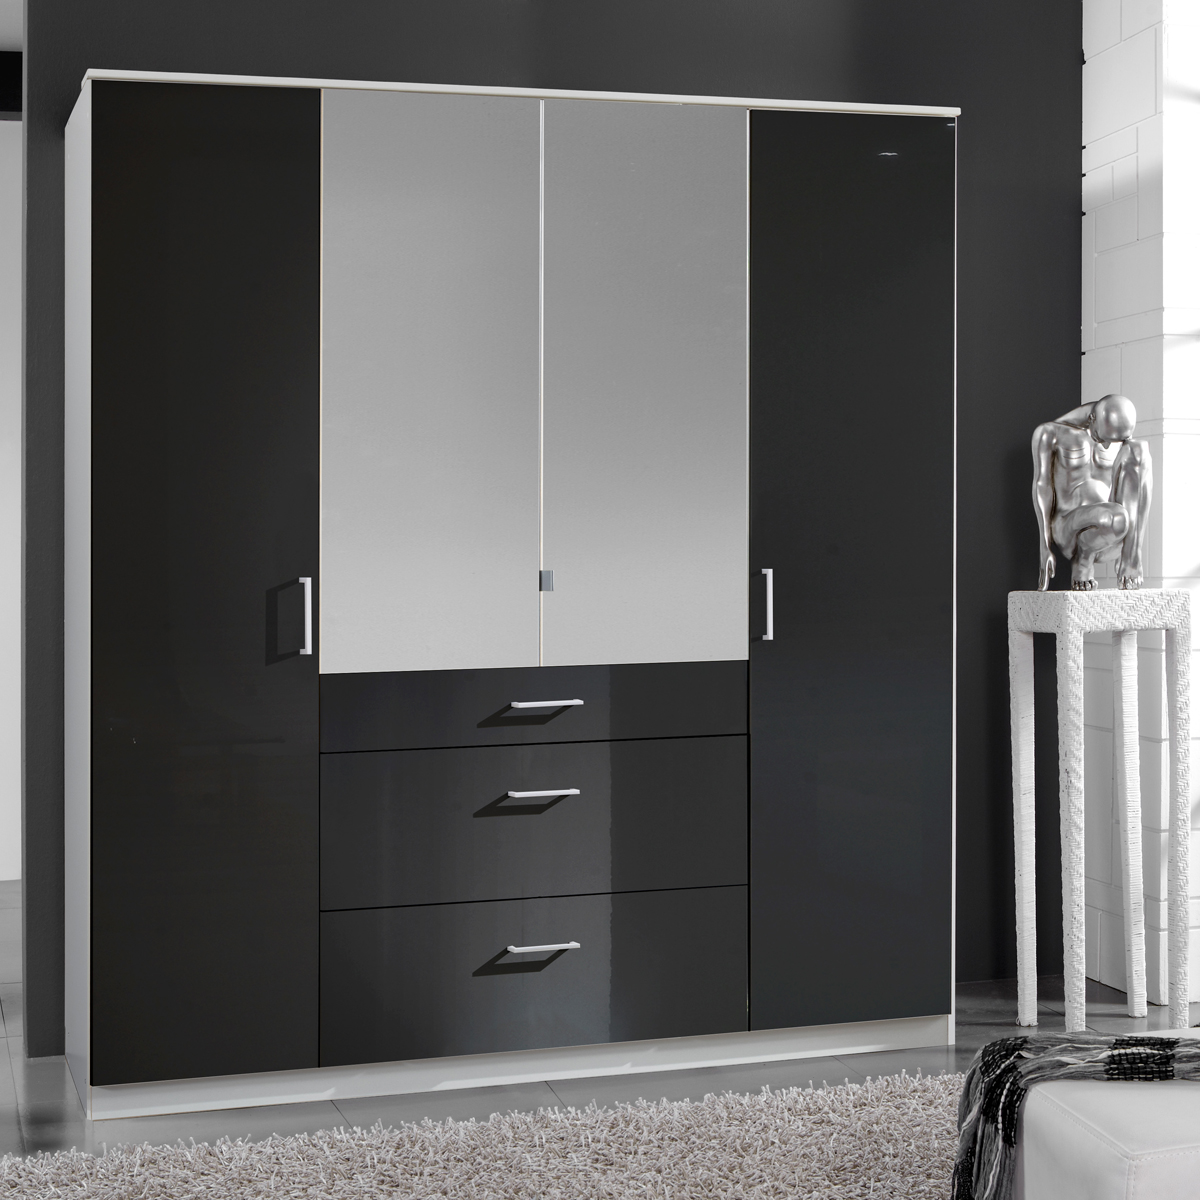 kleiderschrank clack dreht renschrank hochglanz schwarz. Black Bedroom Furniture Sets. Home Design Ideas